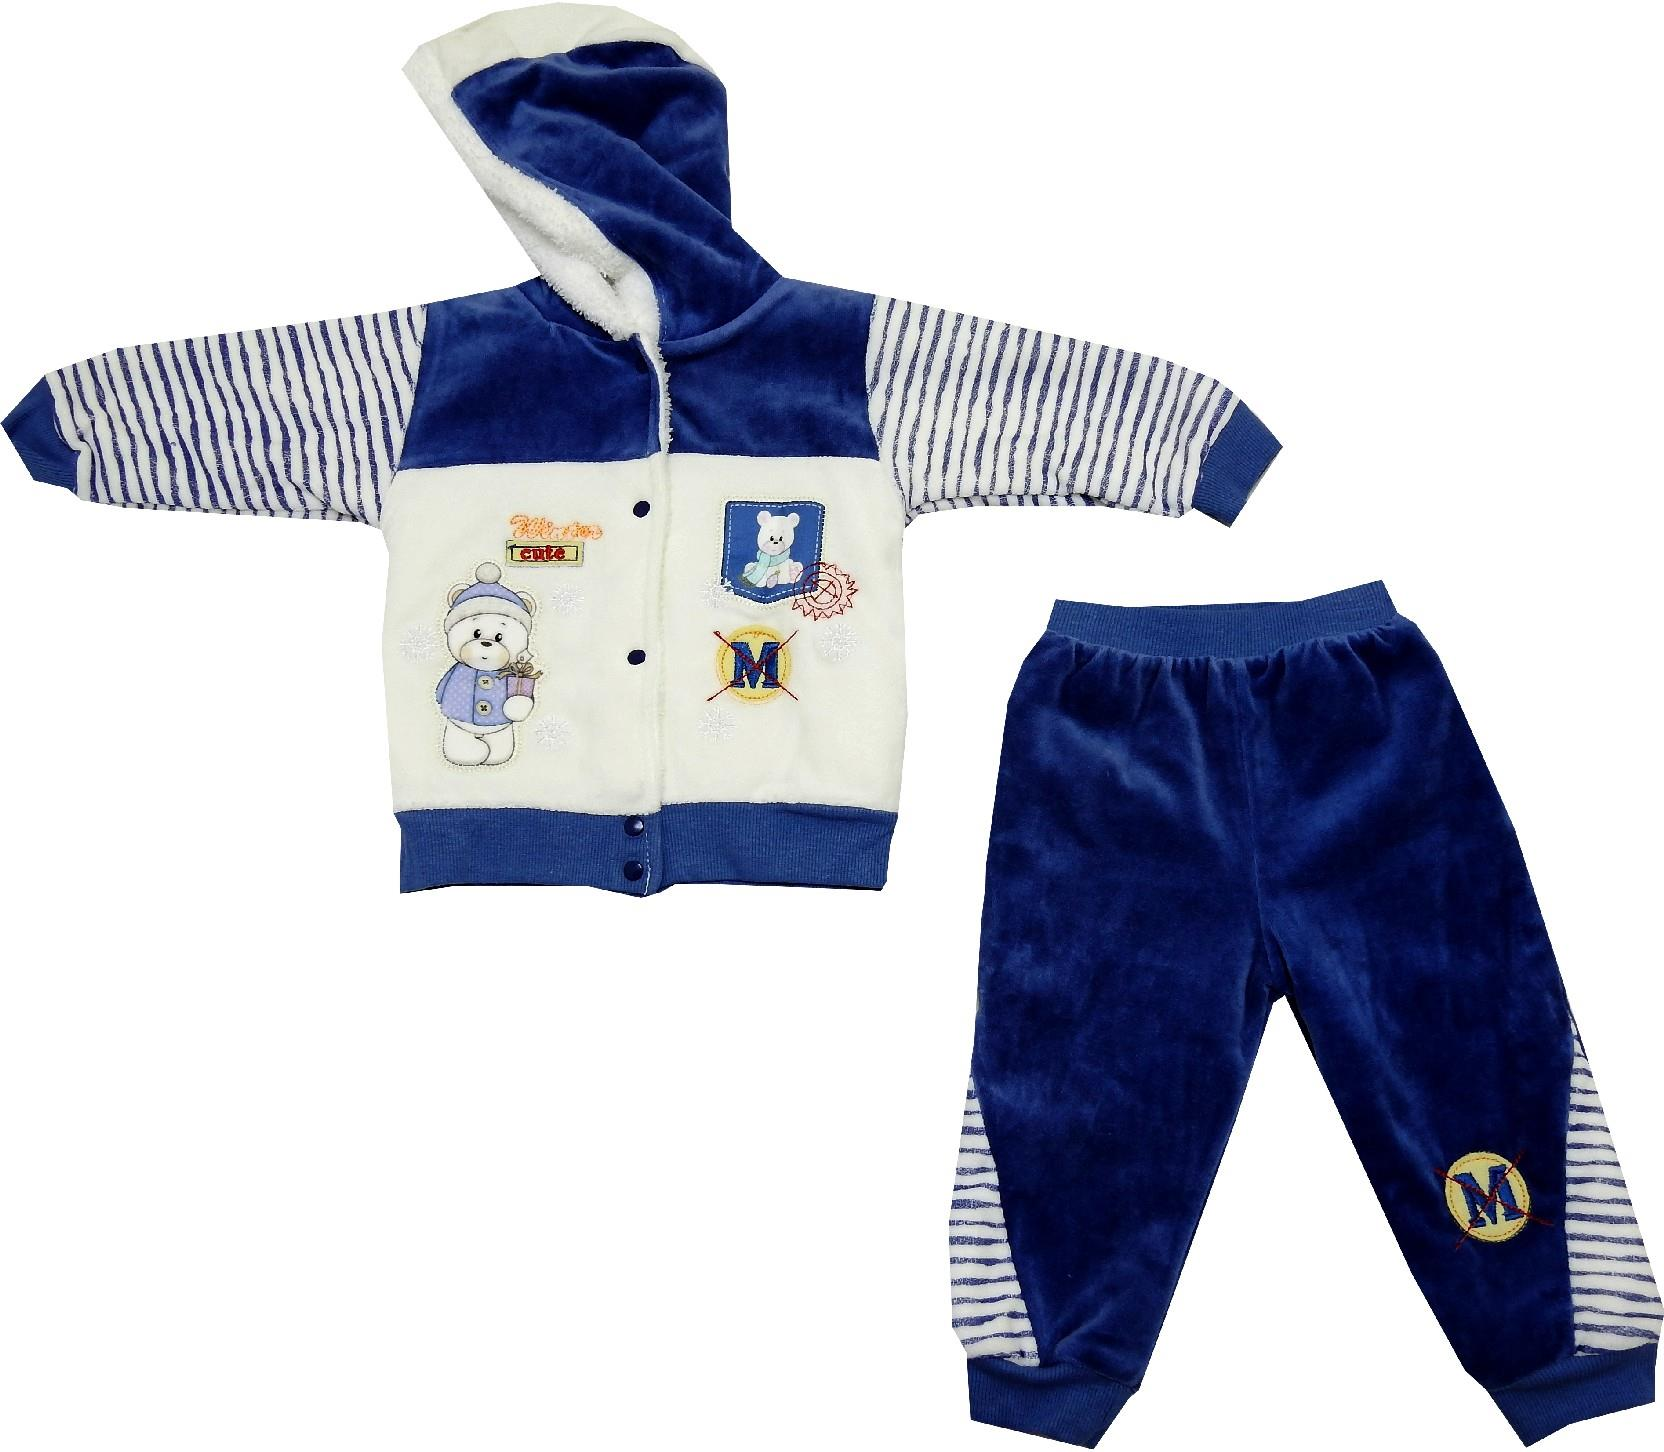 BEAR PRINTED DOUBLE SET FOR BOY (6-9-12 MONTH)